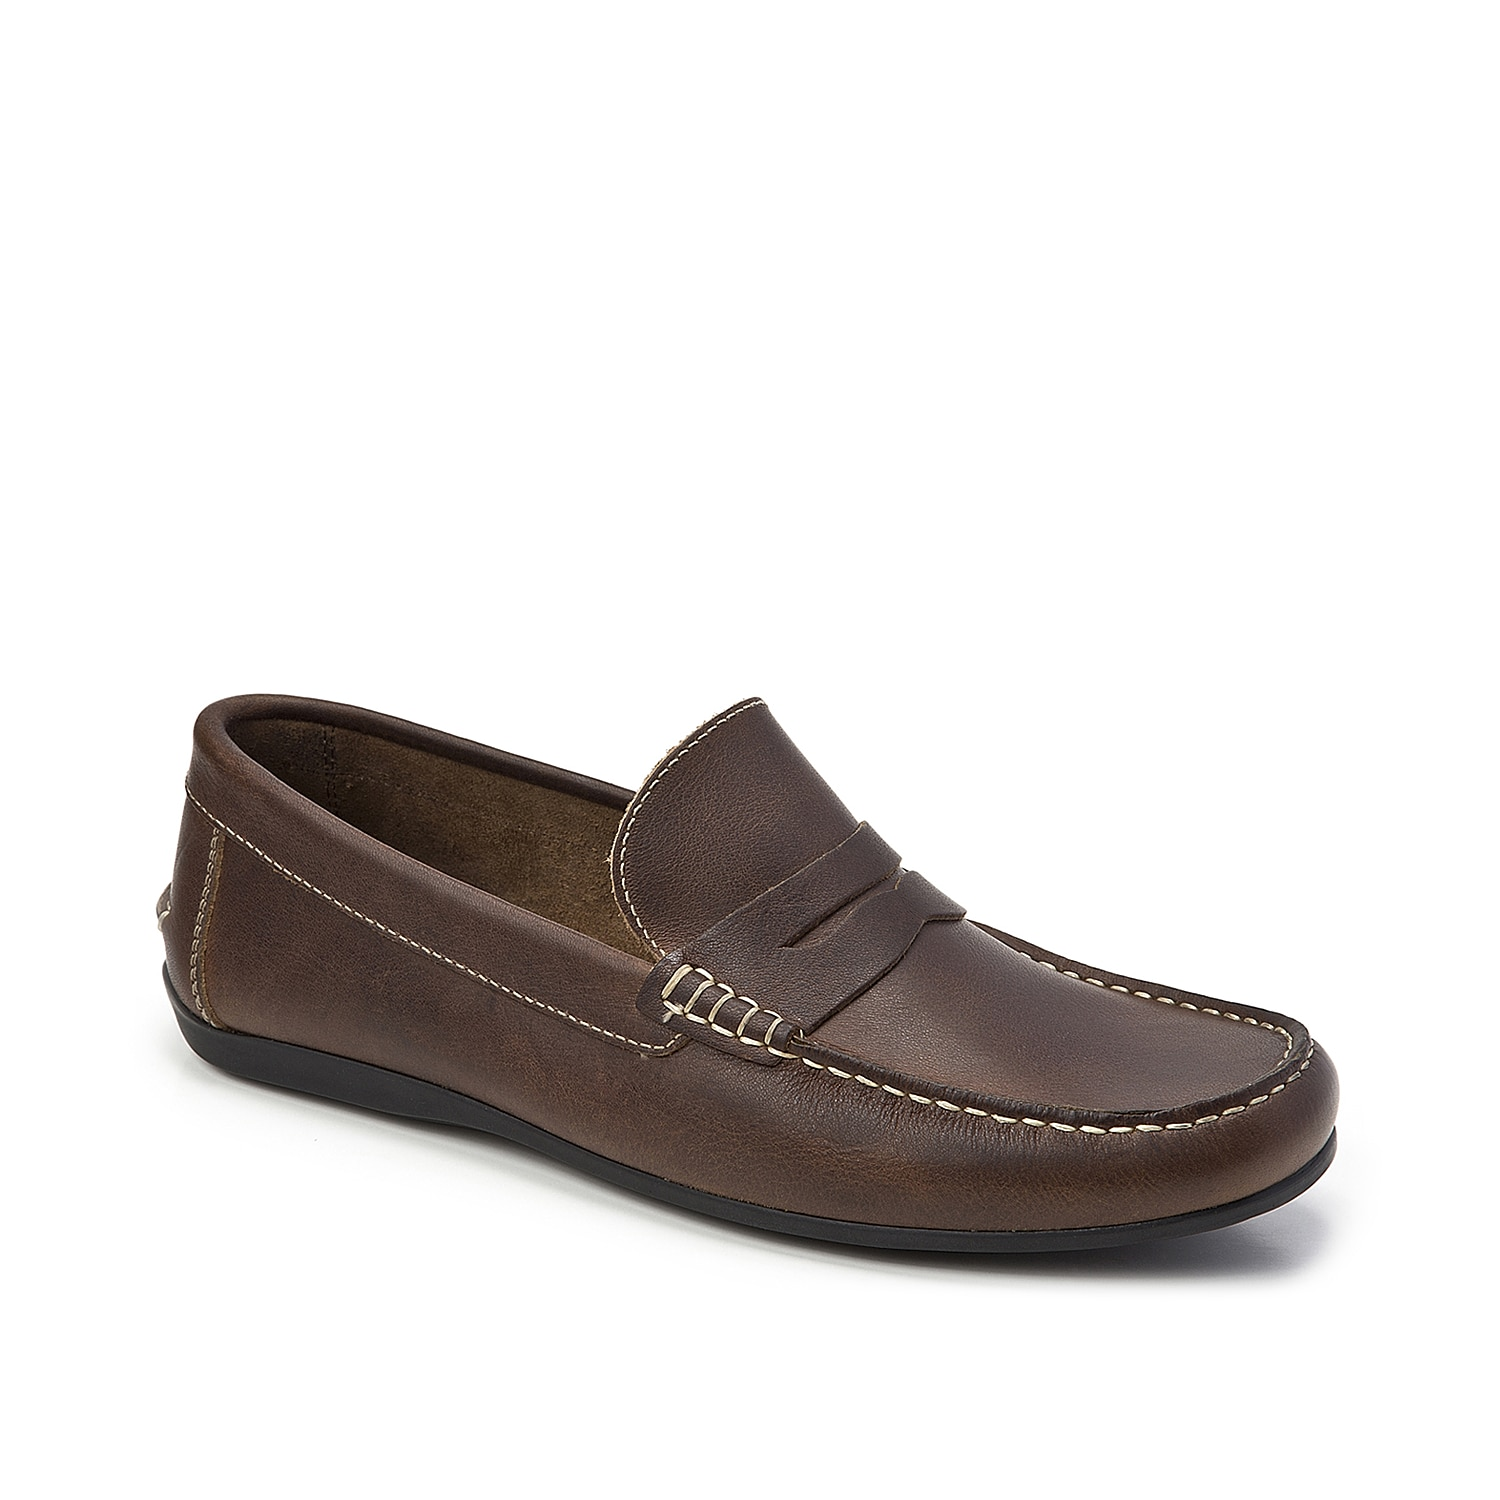 Freshen up your shoe collection with the Niece penny loafer from Sandro Moscoloni. This slip-on features leather upper and a padded footbed for daylong comfort and style!